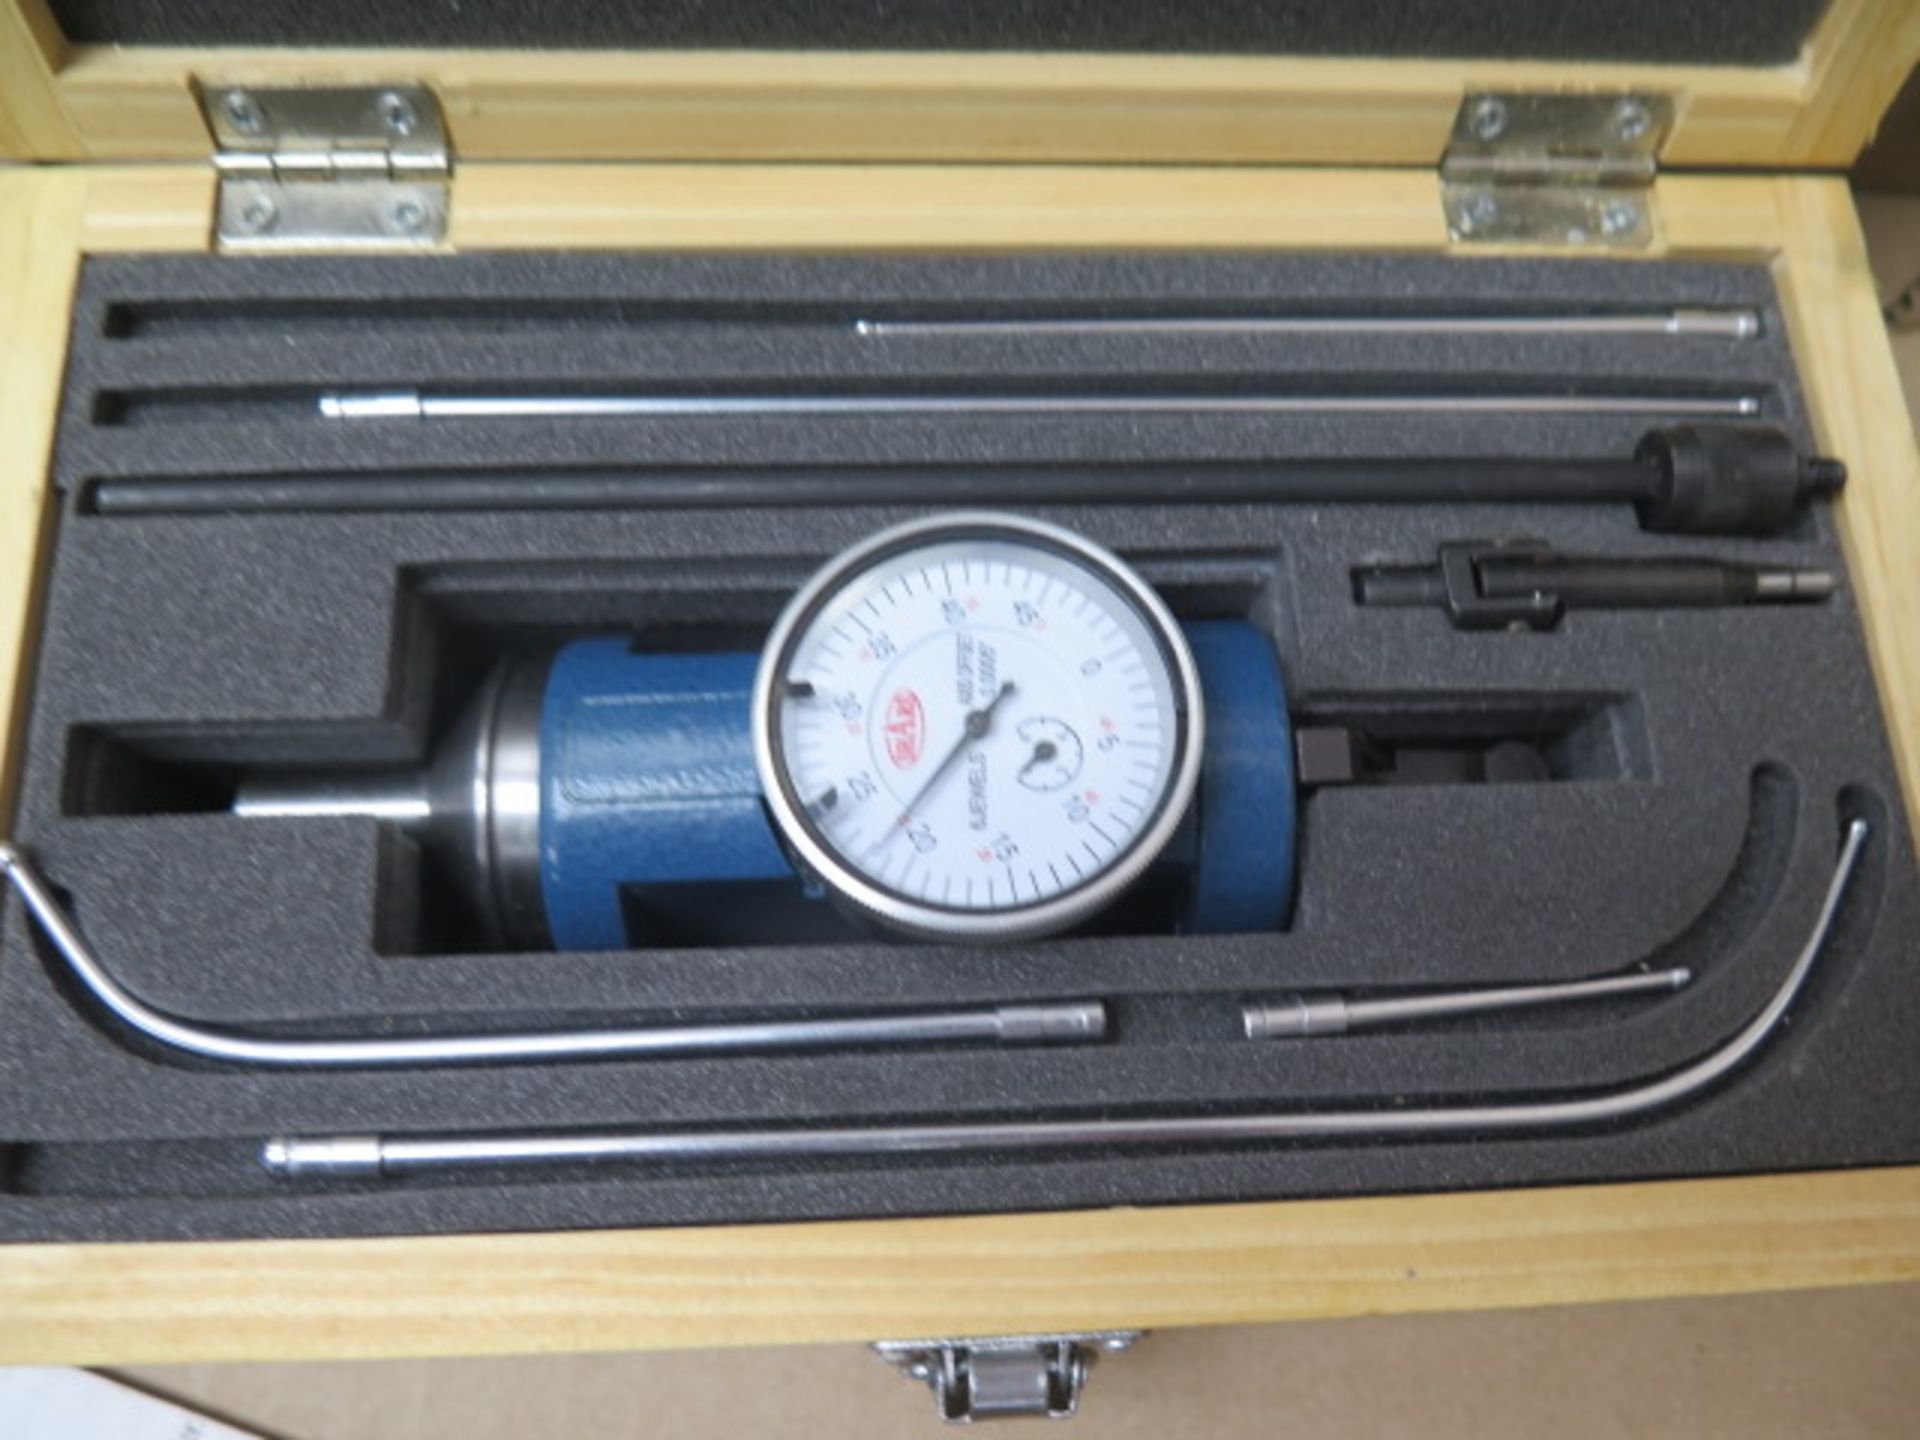 Shars Universal Indicator (SOLD AS-IS - NO WARRANTY) - Image 3 of 4